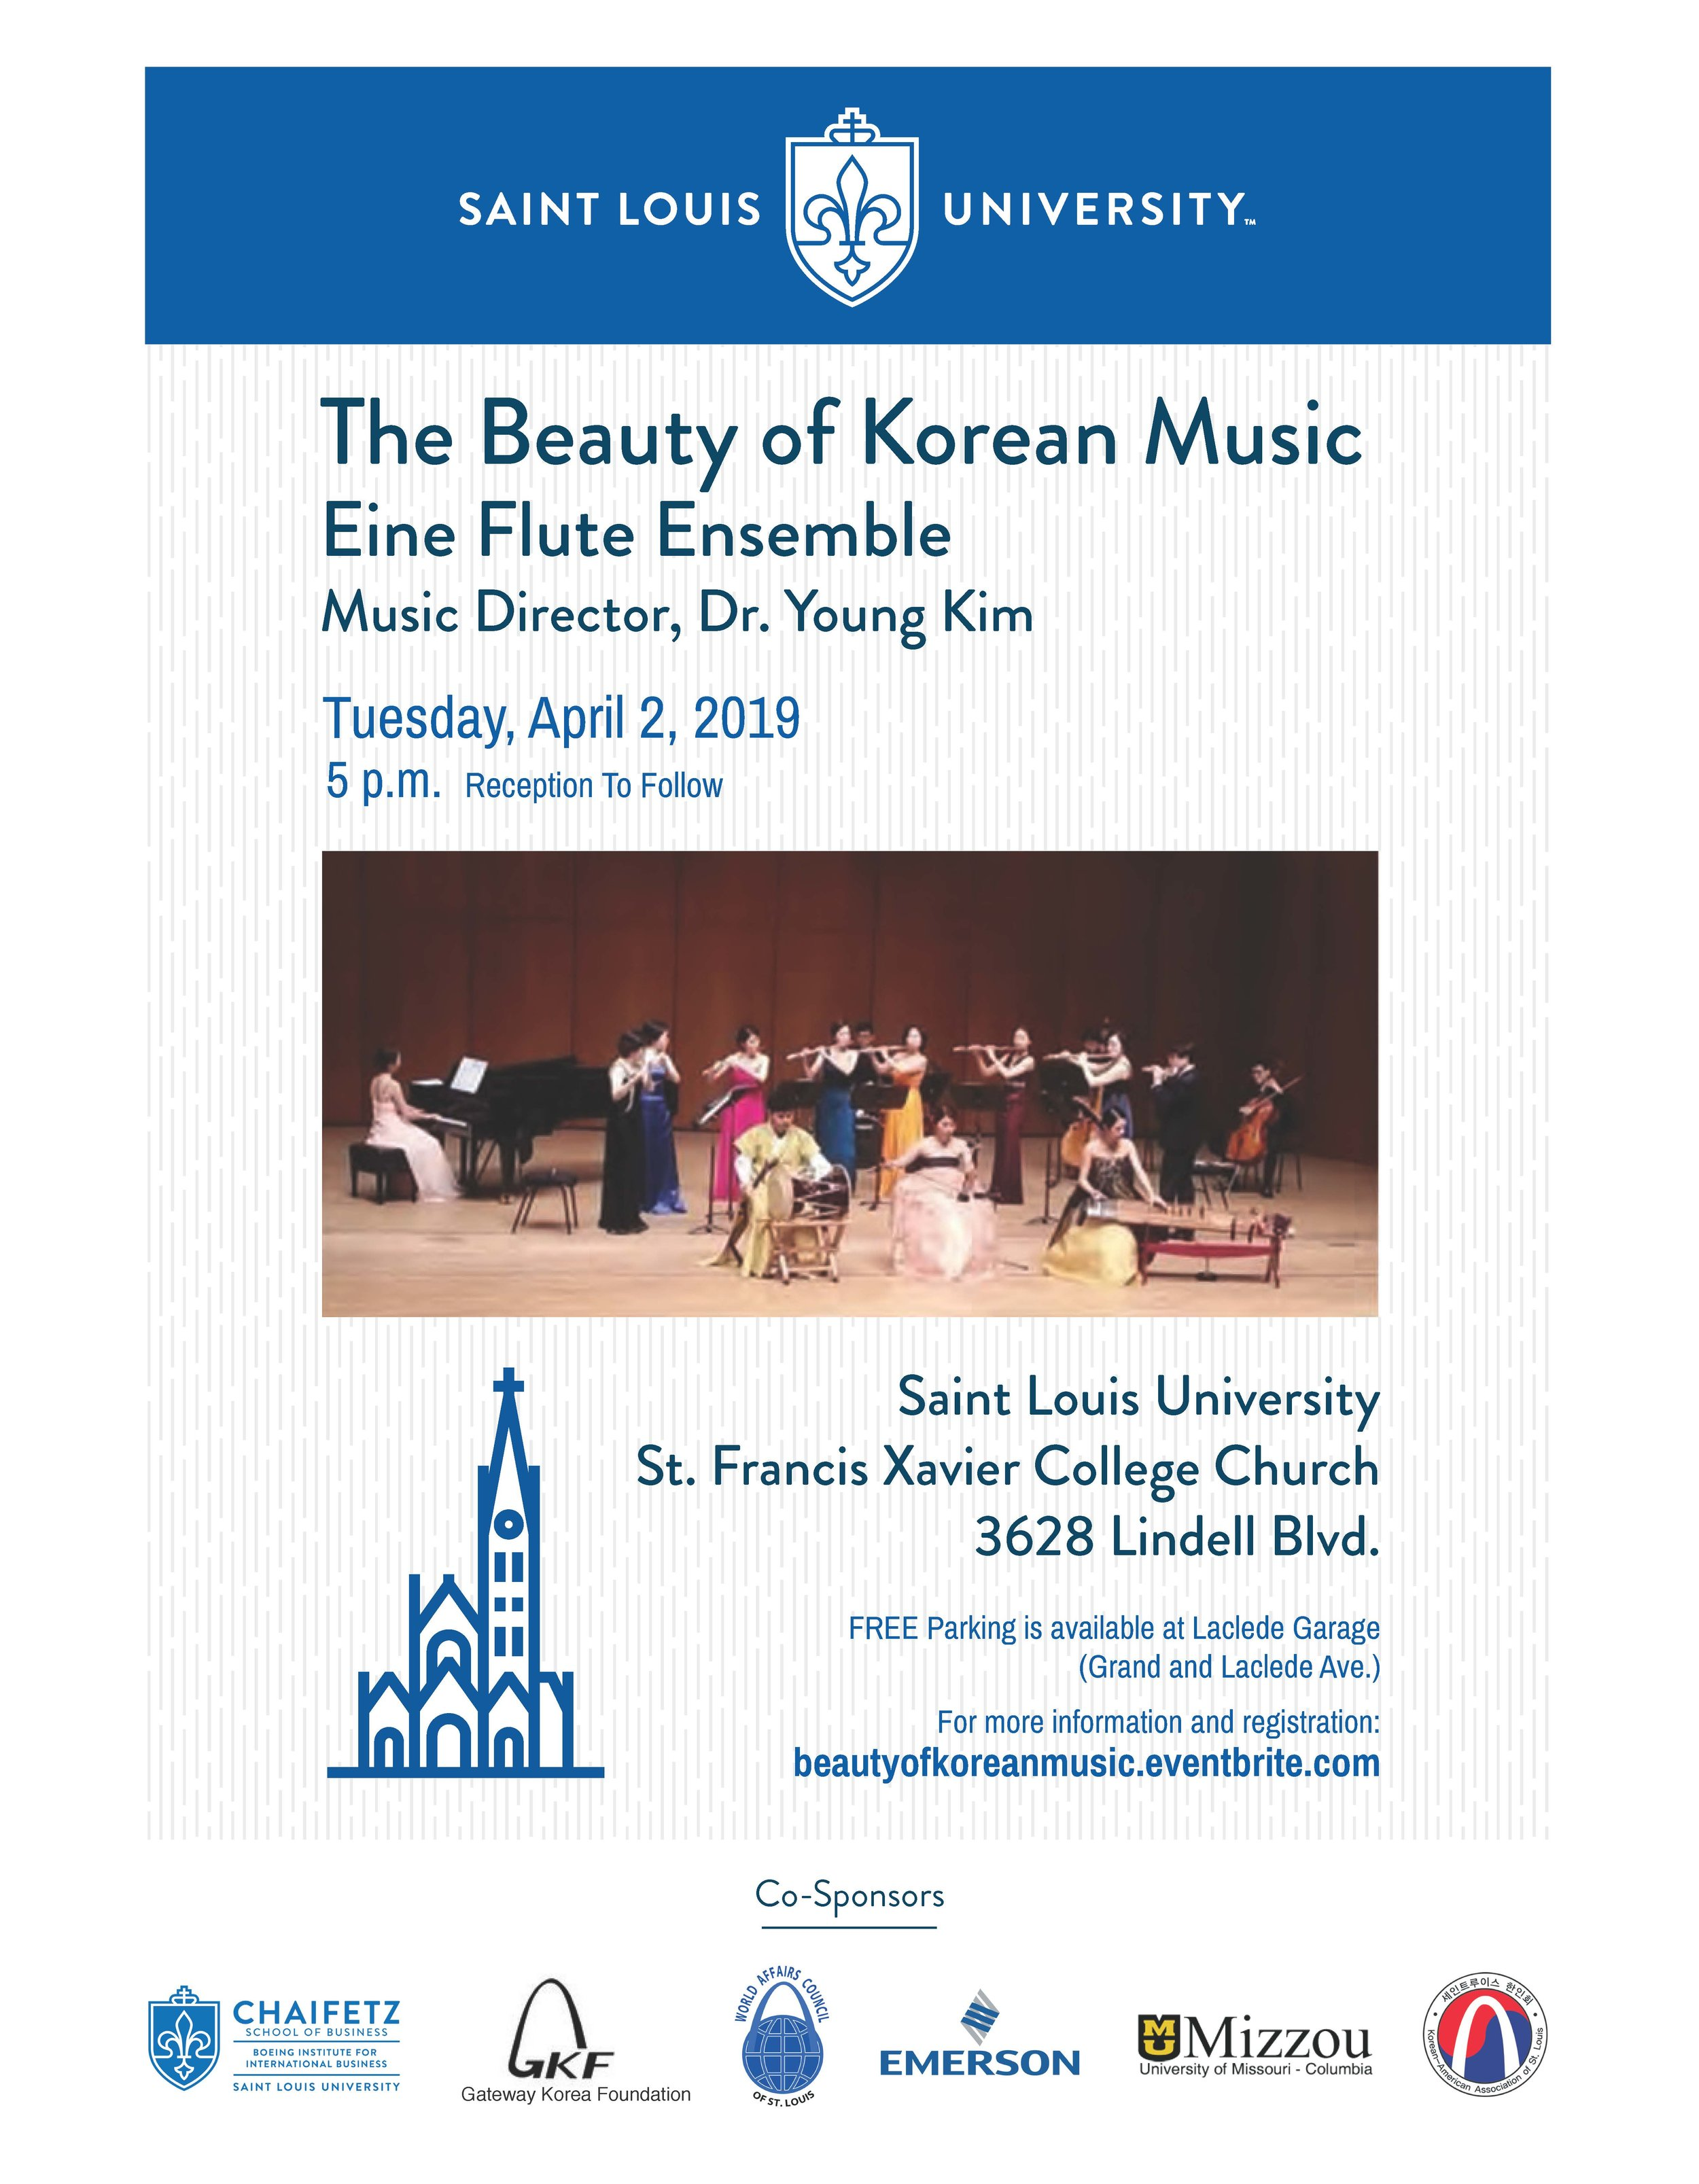 Final_Eine Flute Ensemble flyer 19.jpg